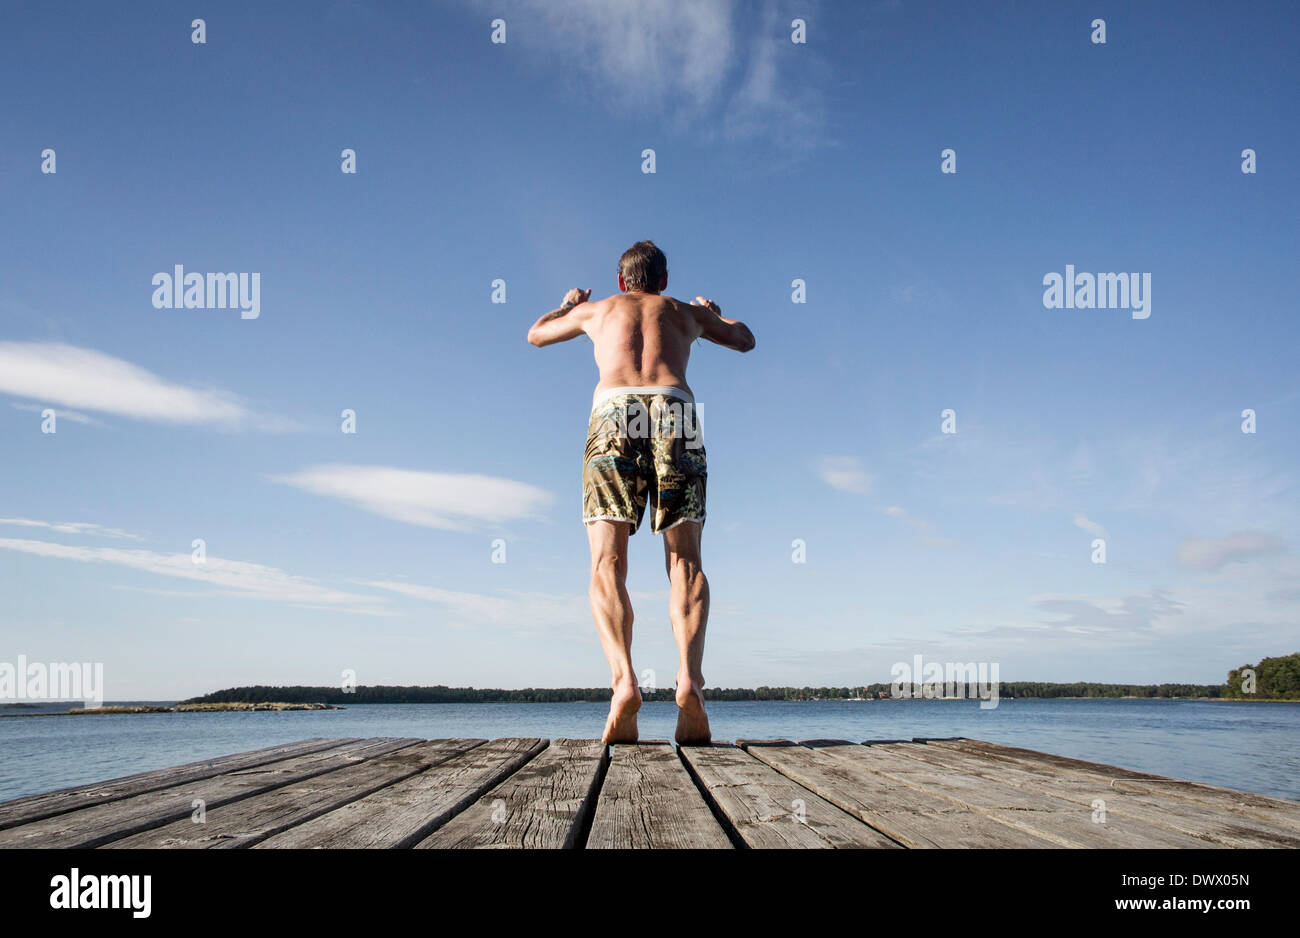 Rear view of mature man diving into sea - Stock Image